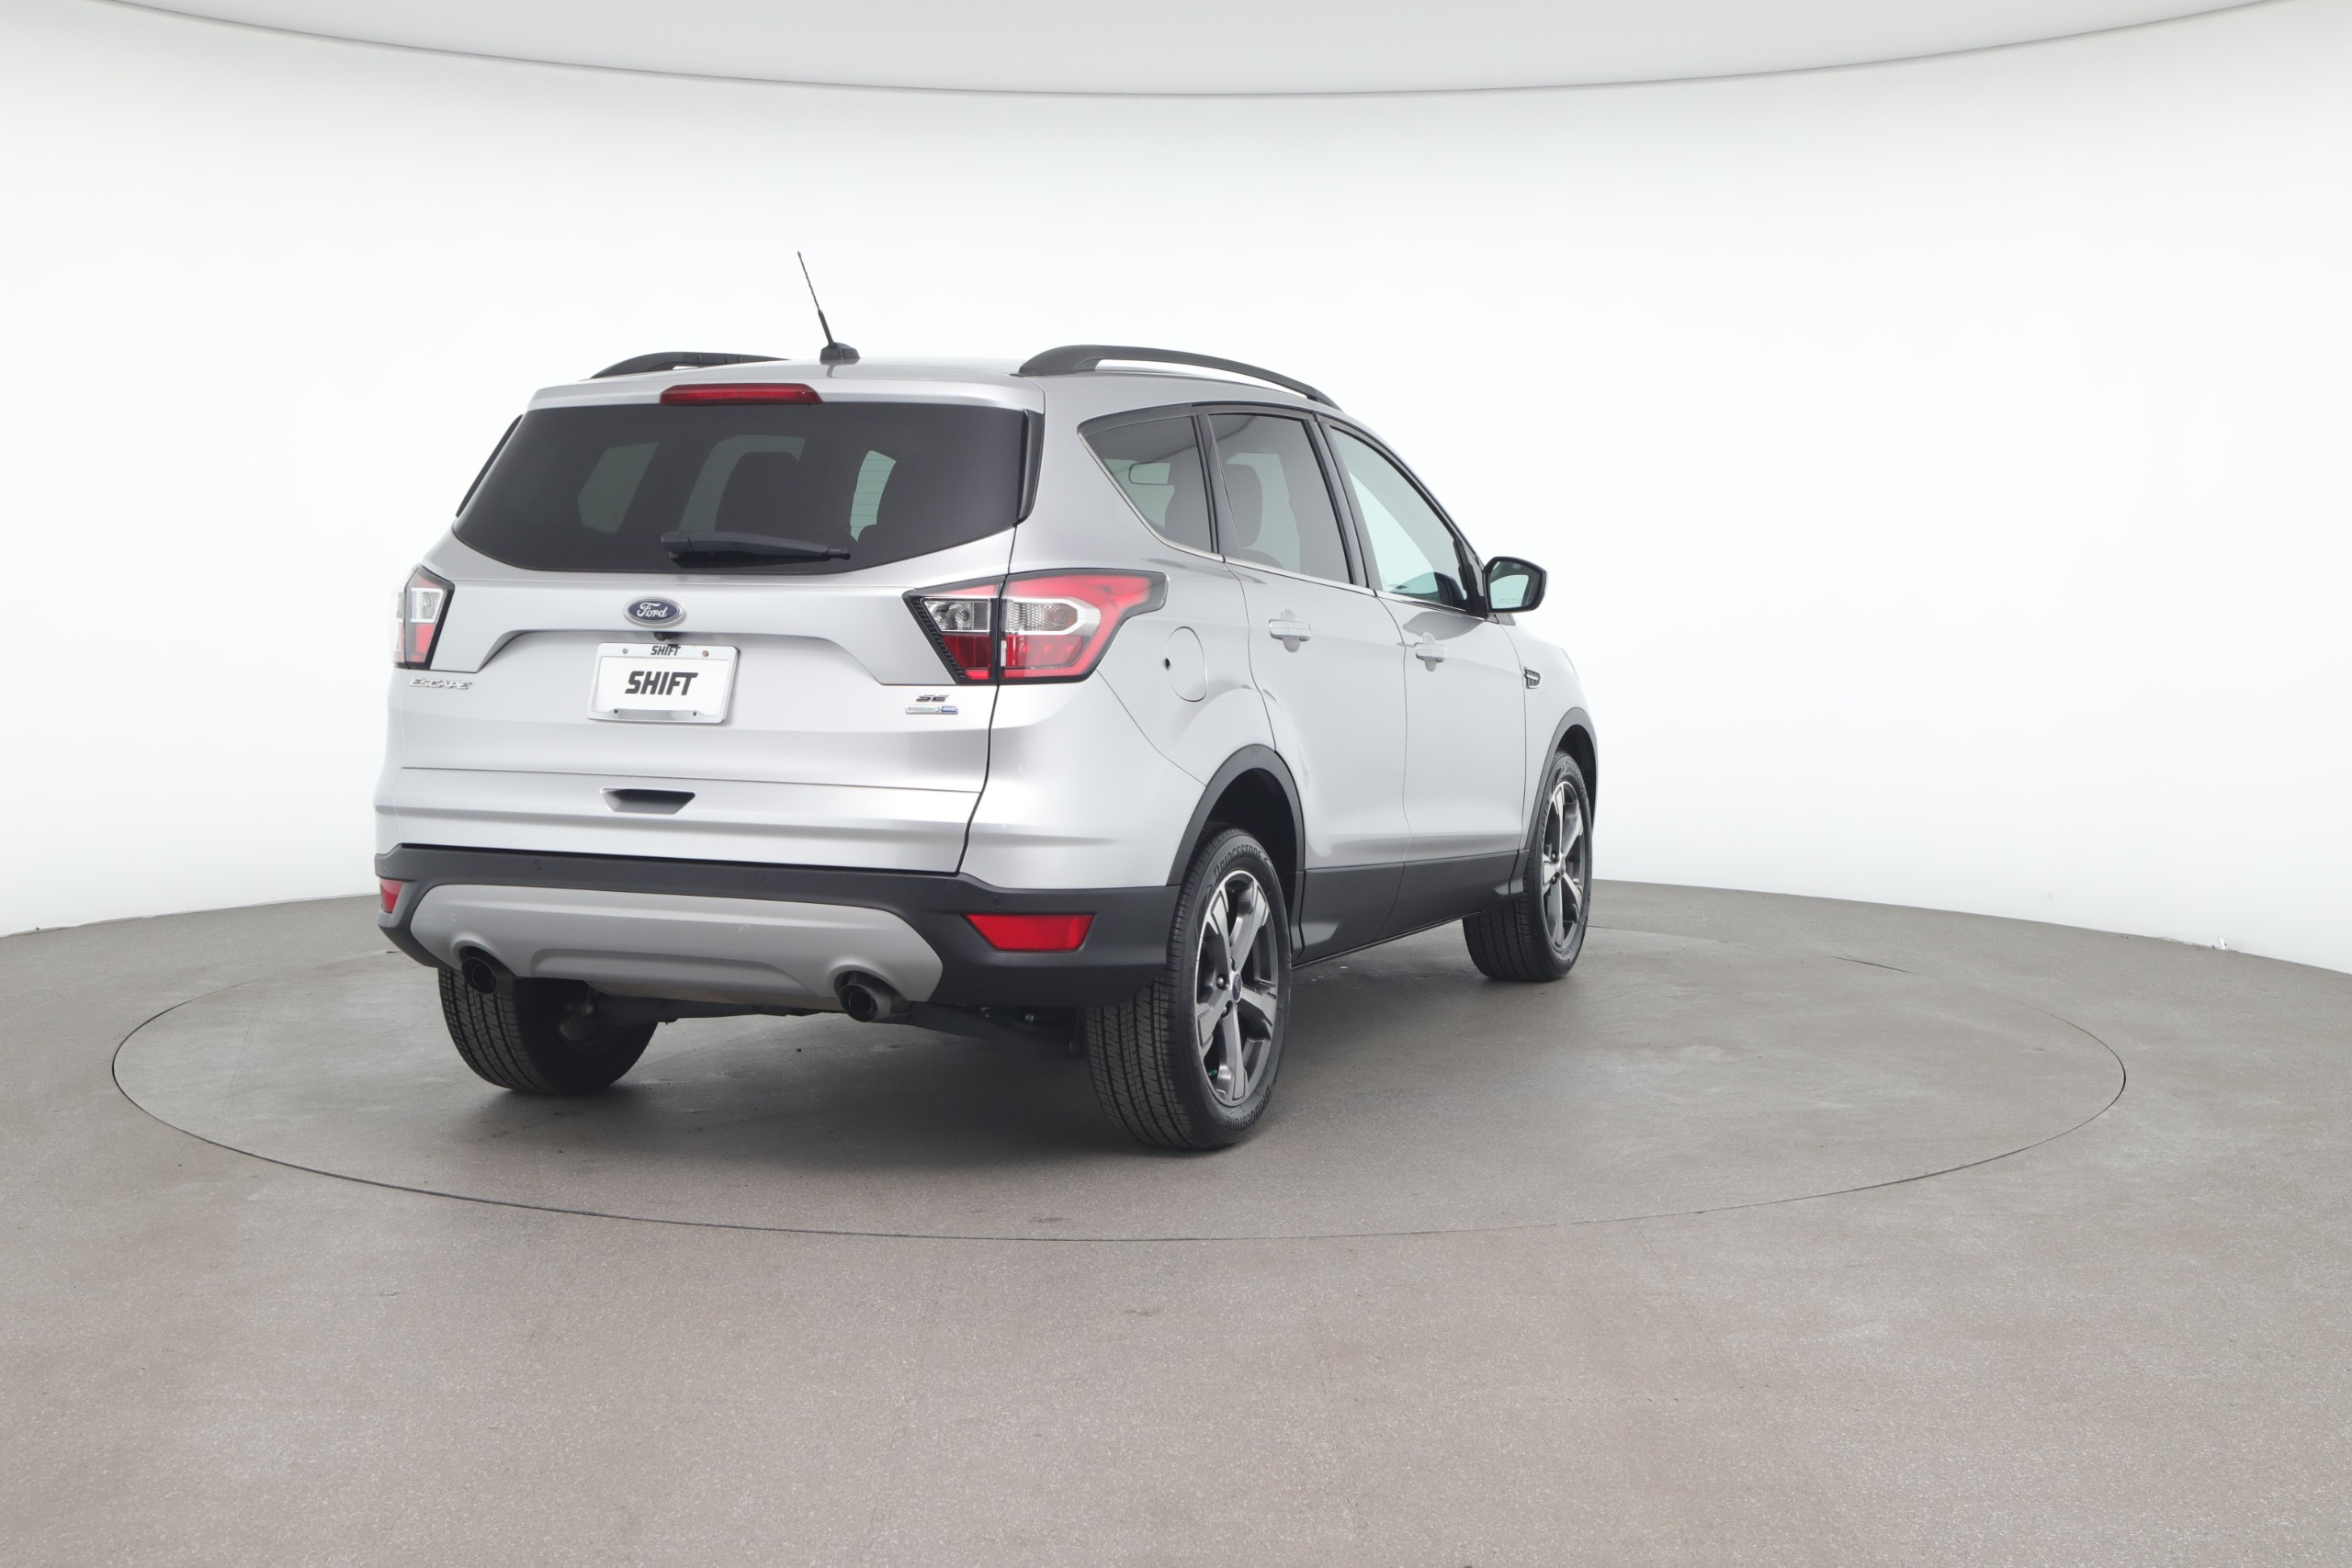 2017 Ford Escape SE (from $21,950)